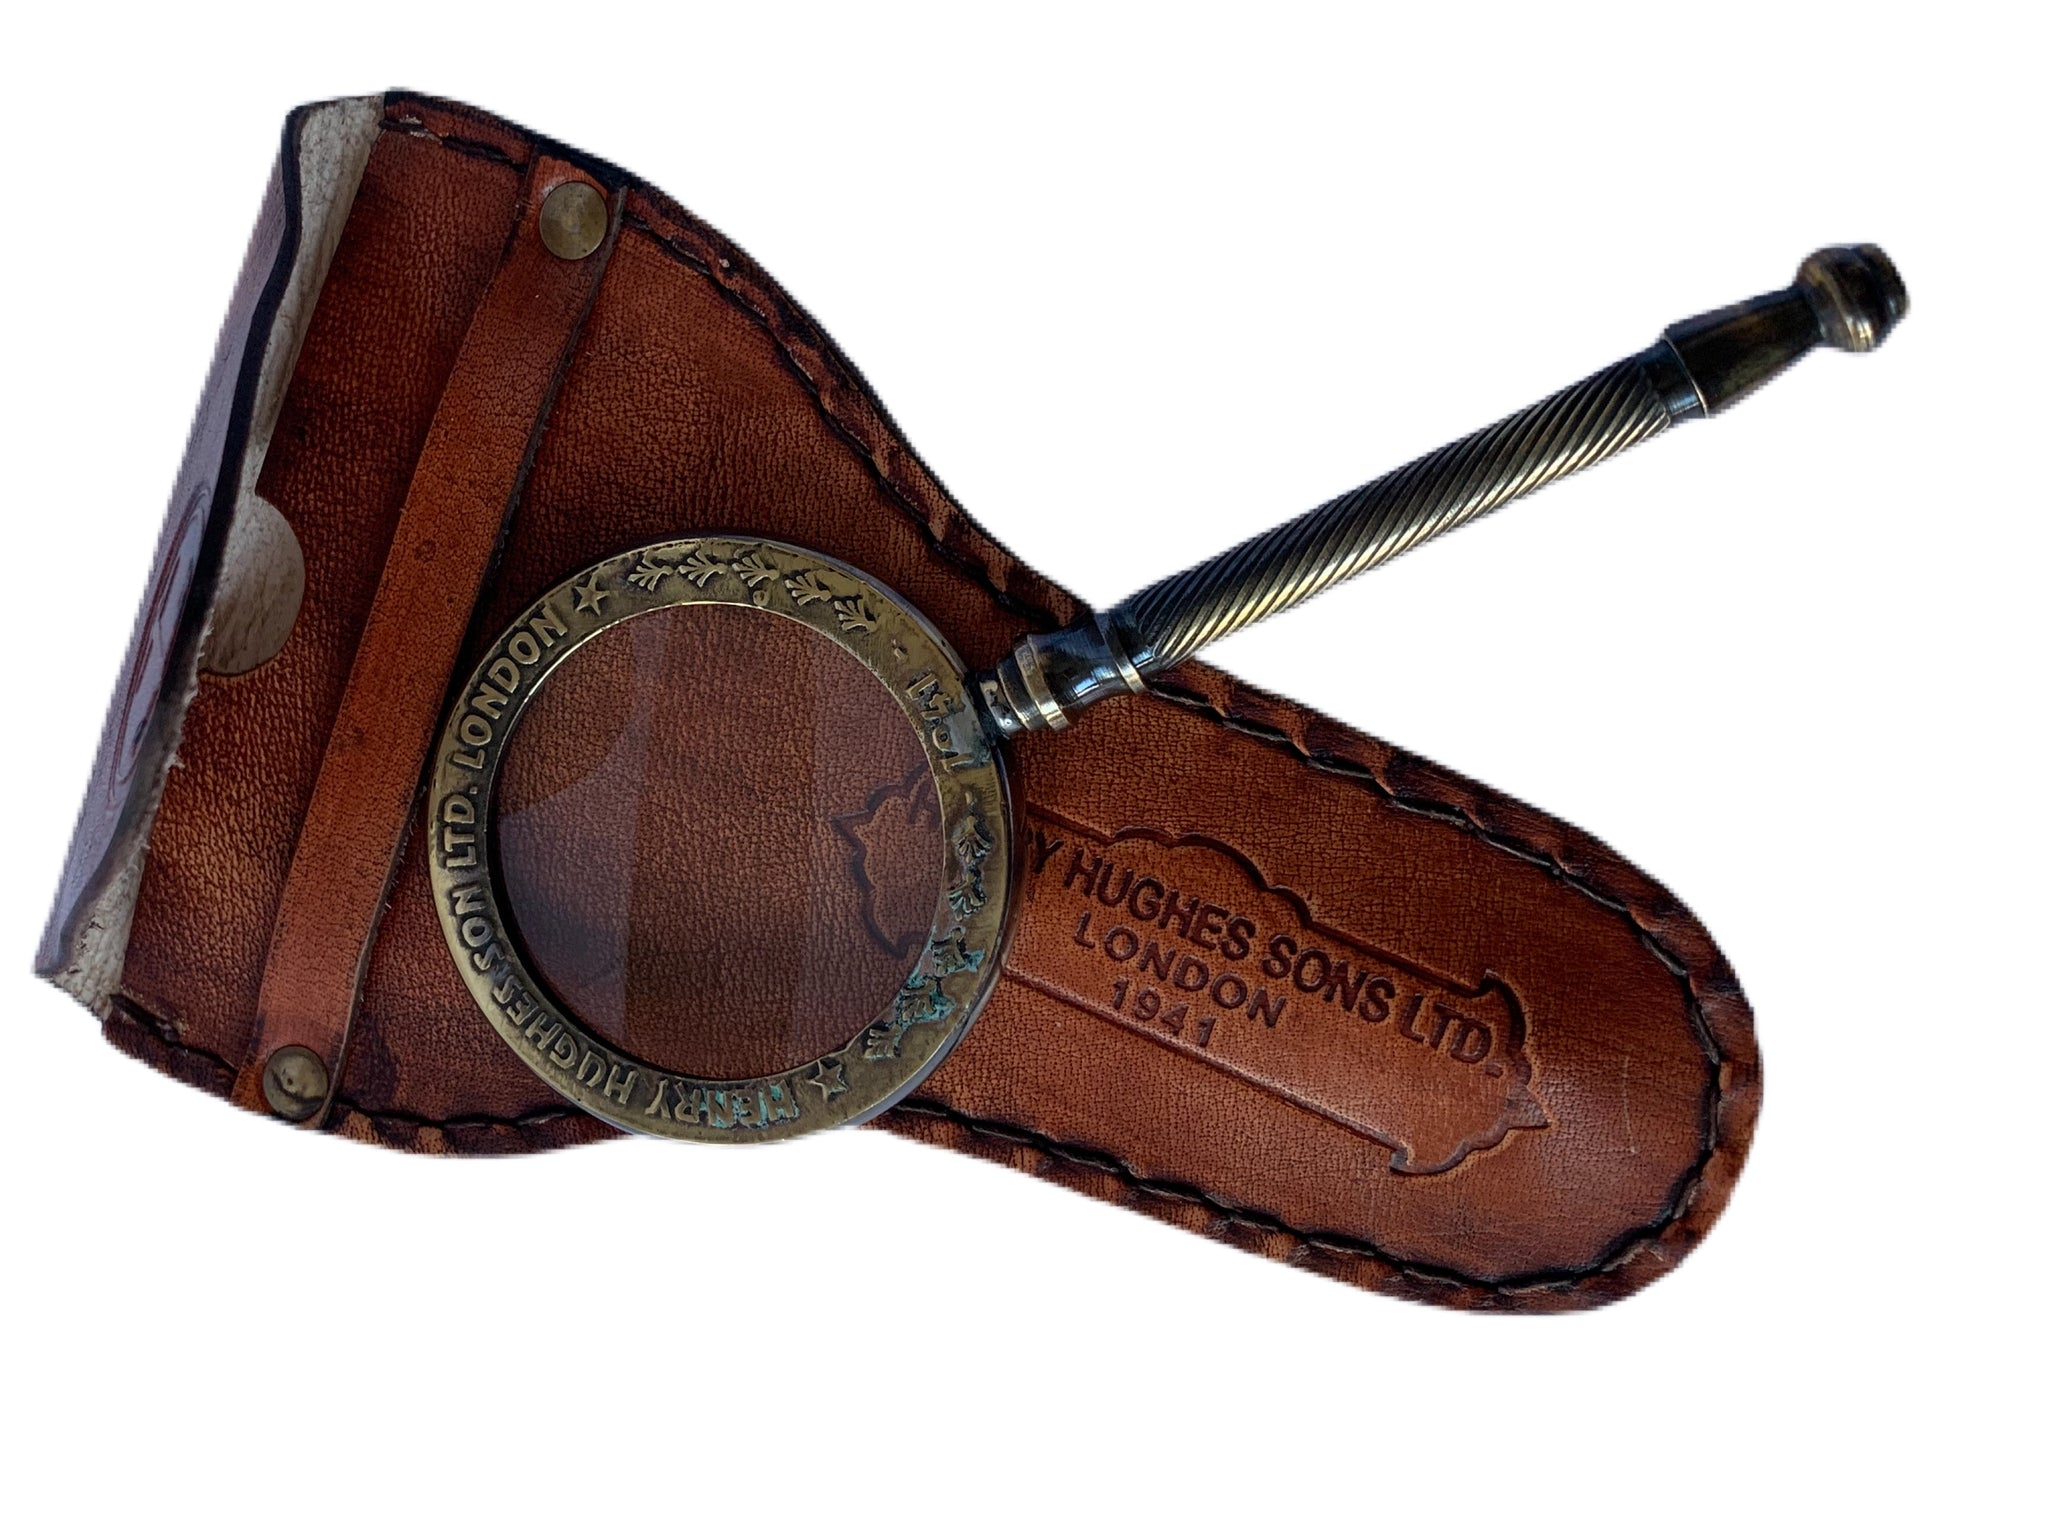 Magnifier - small with leather case